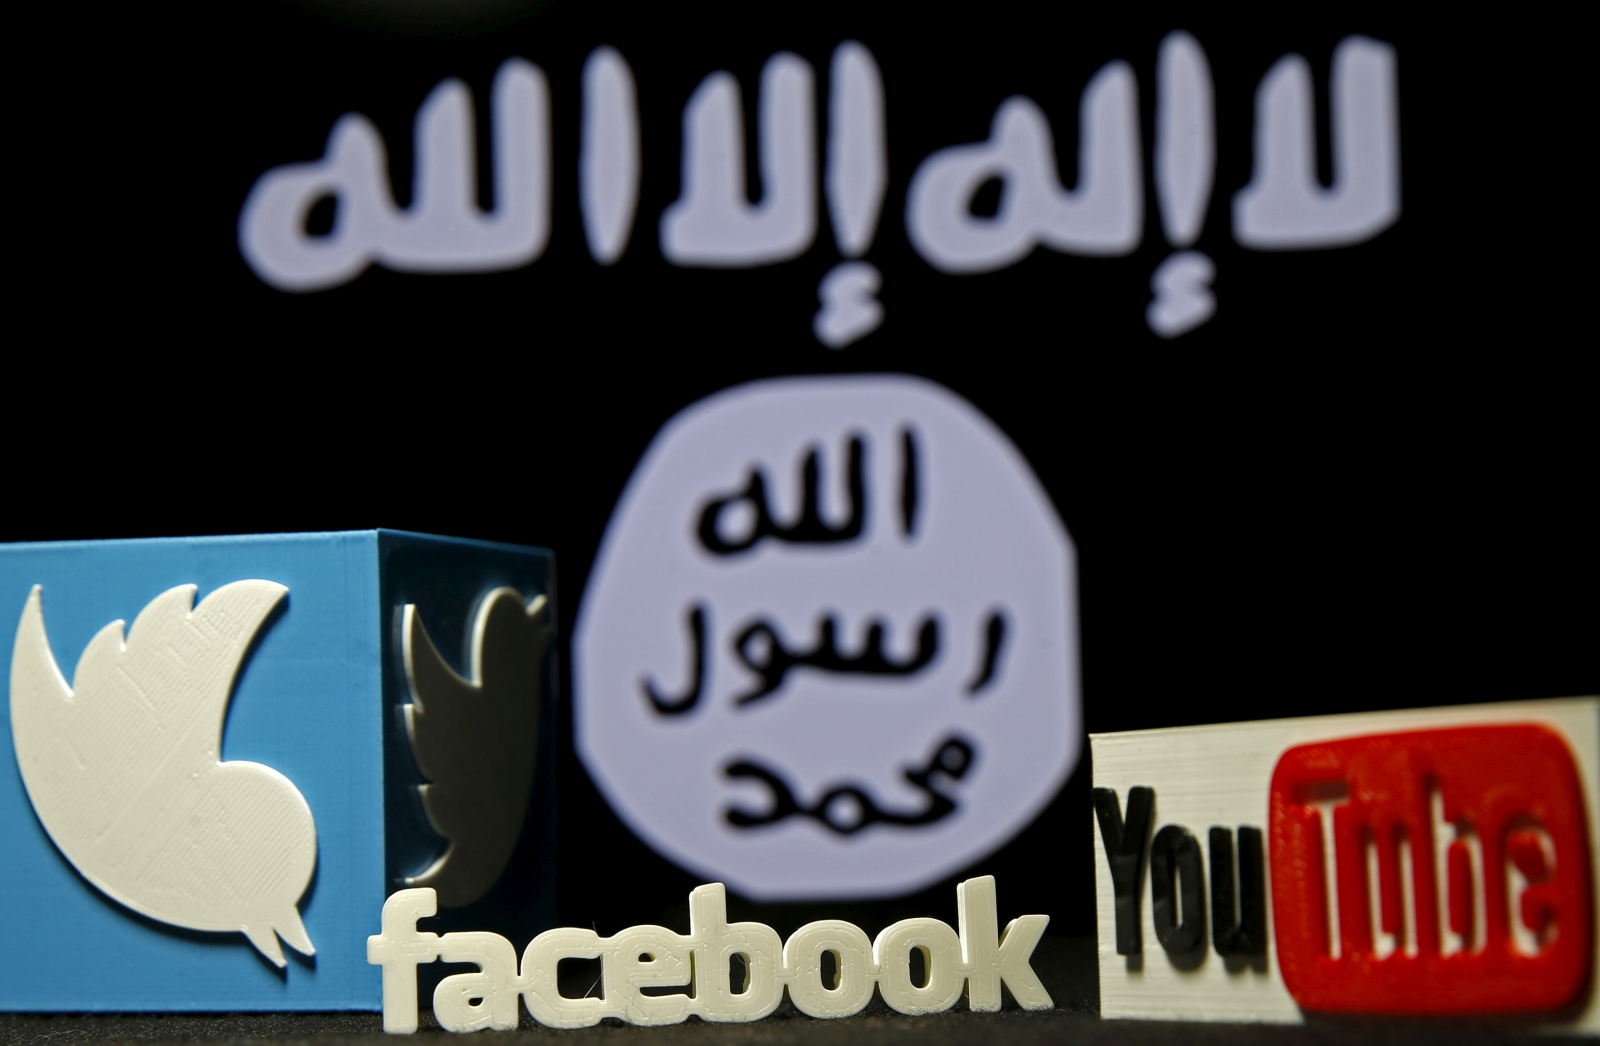 The complexity of eradicating ISIS propaganda online